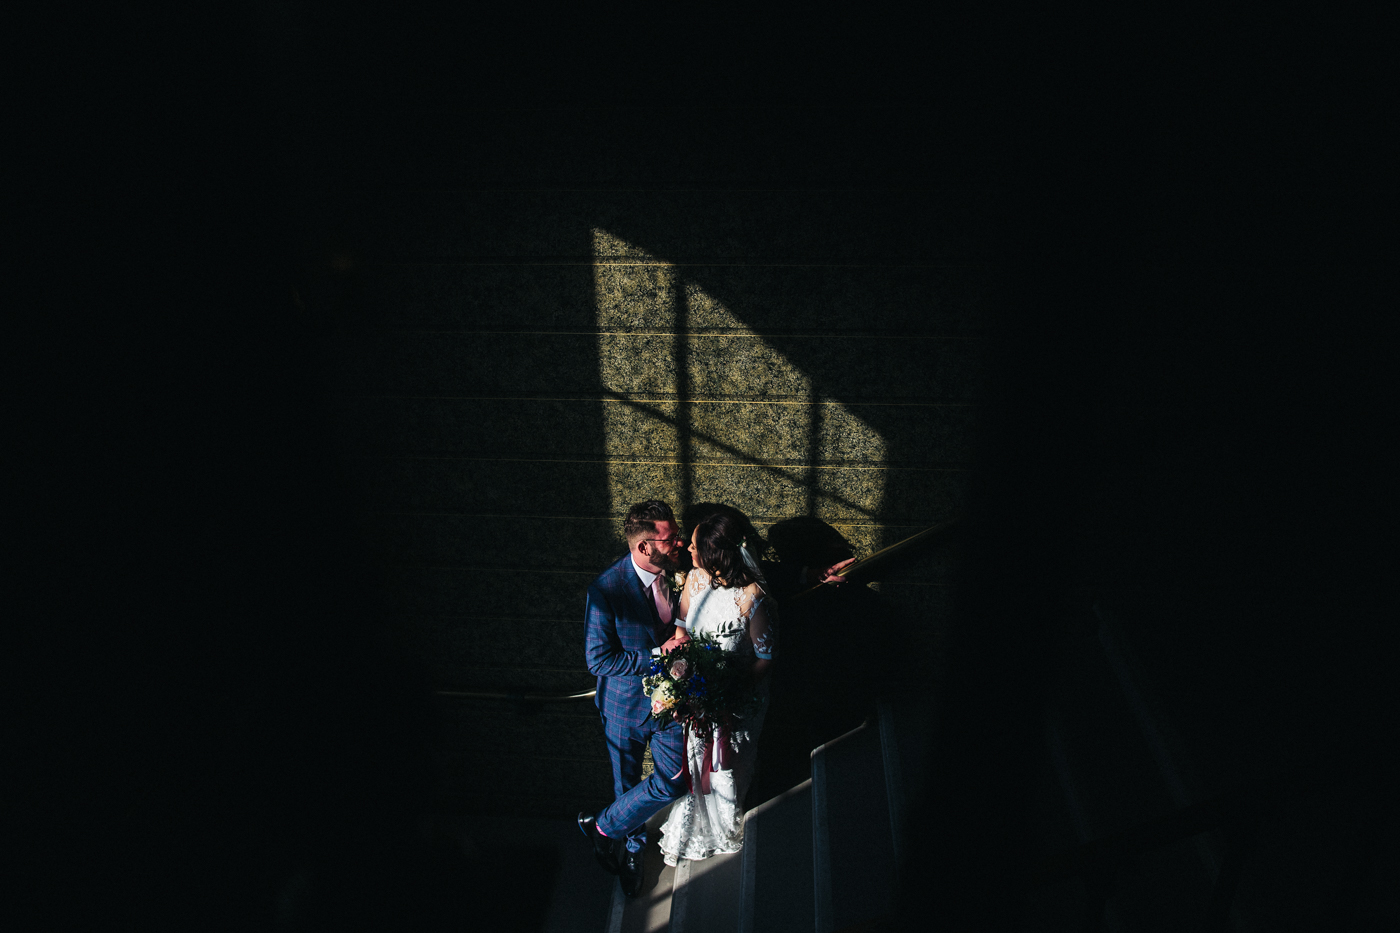 a bride and groom stand in a patch of light on a stairwell. ceremony at st georges hall liverpool, oh me oh my wedding reception, north west wedding photographer